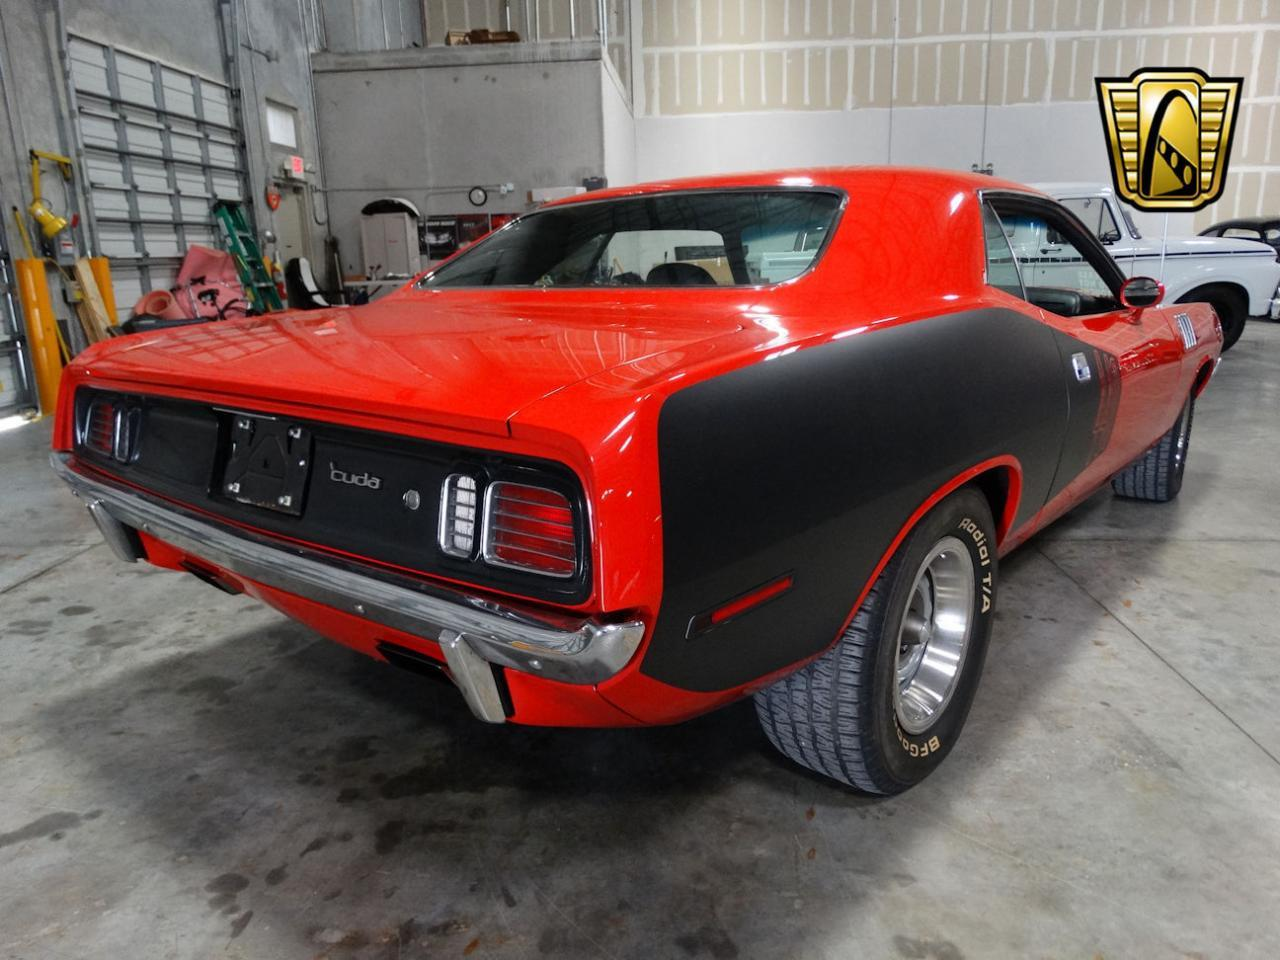 Large Picture of 1971 Plymouth Barracuda located in Florida - $63,000.00 Offered by Gateway Classic Cars - Fort Lauderdale - L7H0